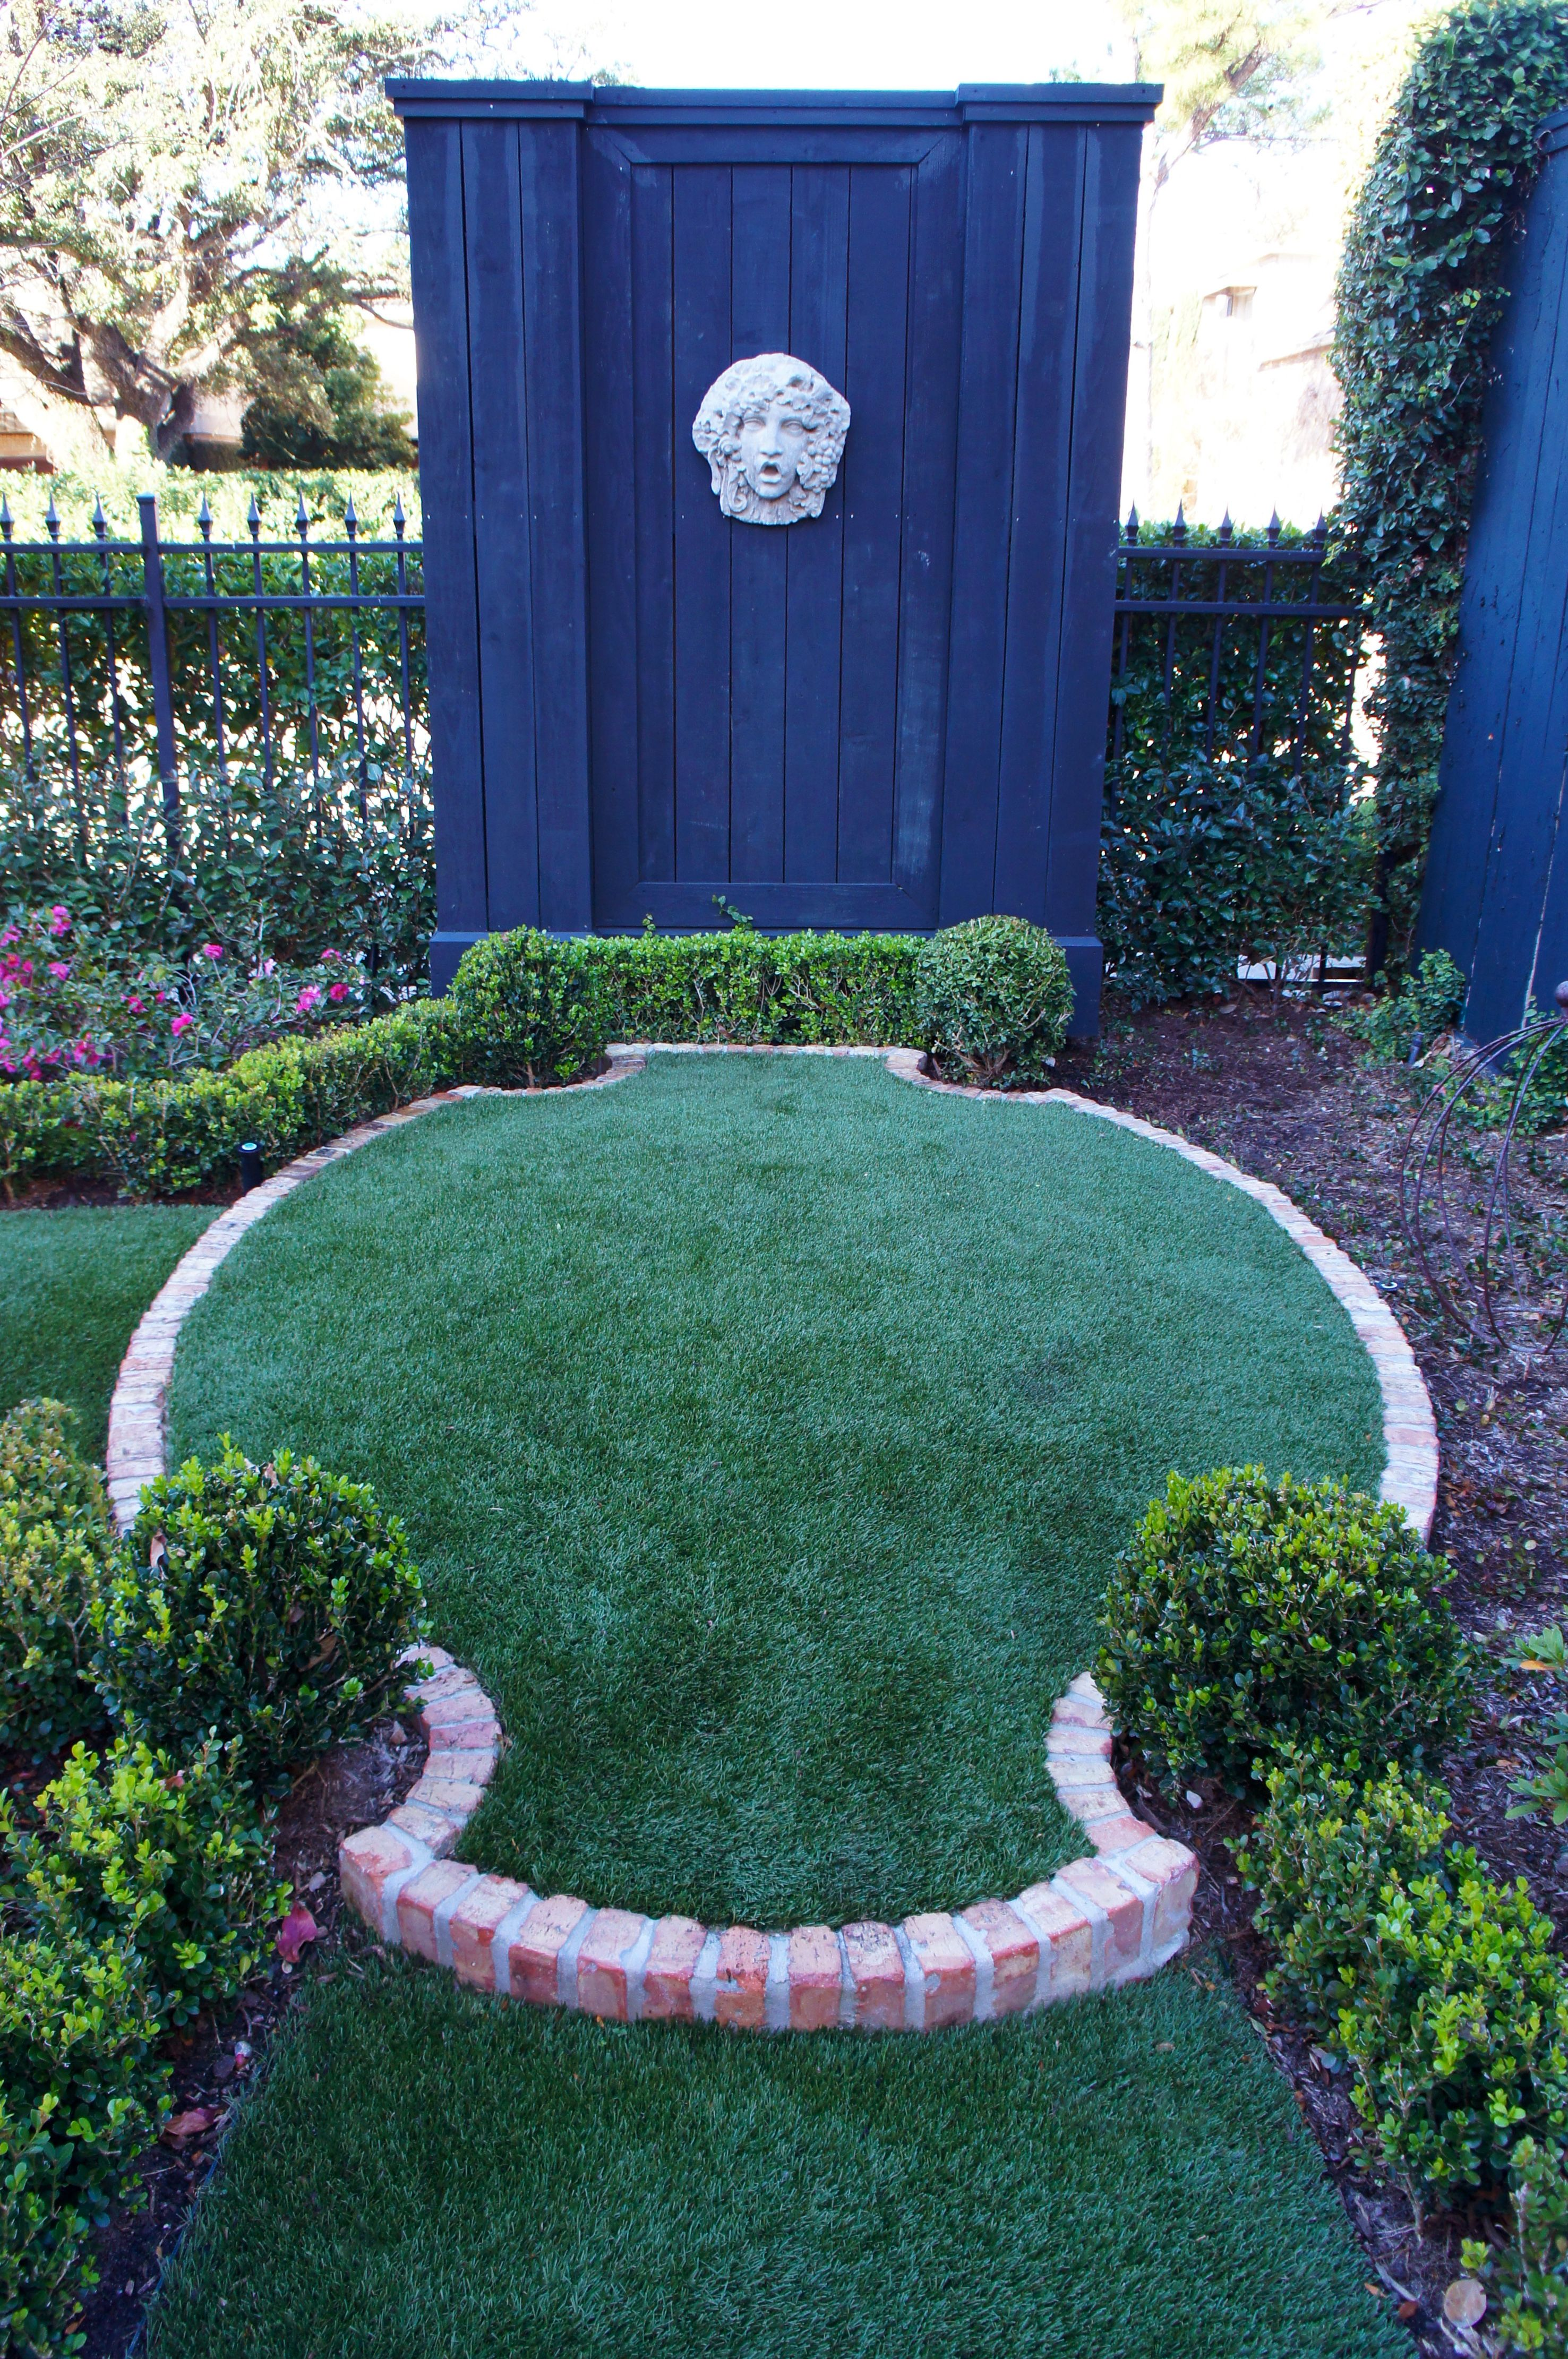 Boasts Clic Finials And Garden Decor Synthetic Lawn Bordered With Red Brick Accented By Boxwood Hedges